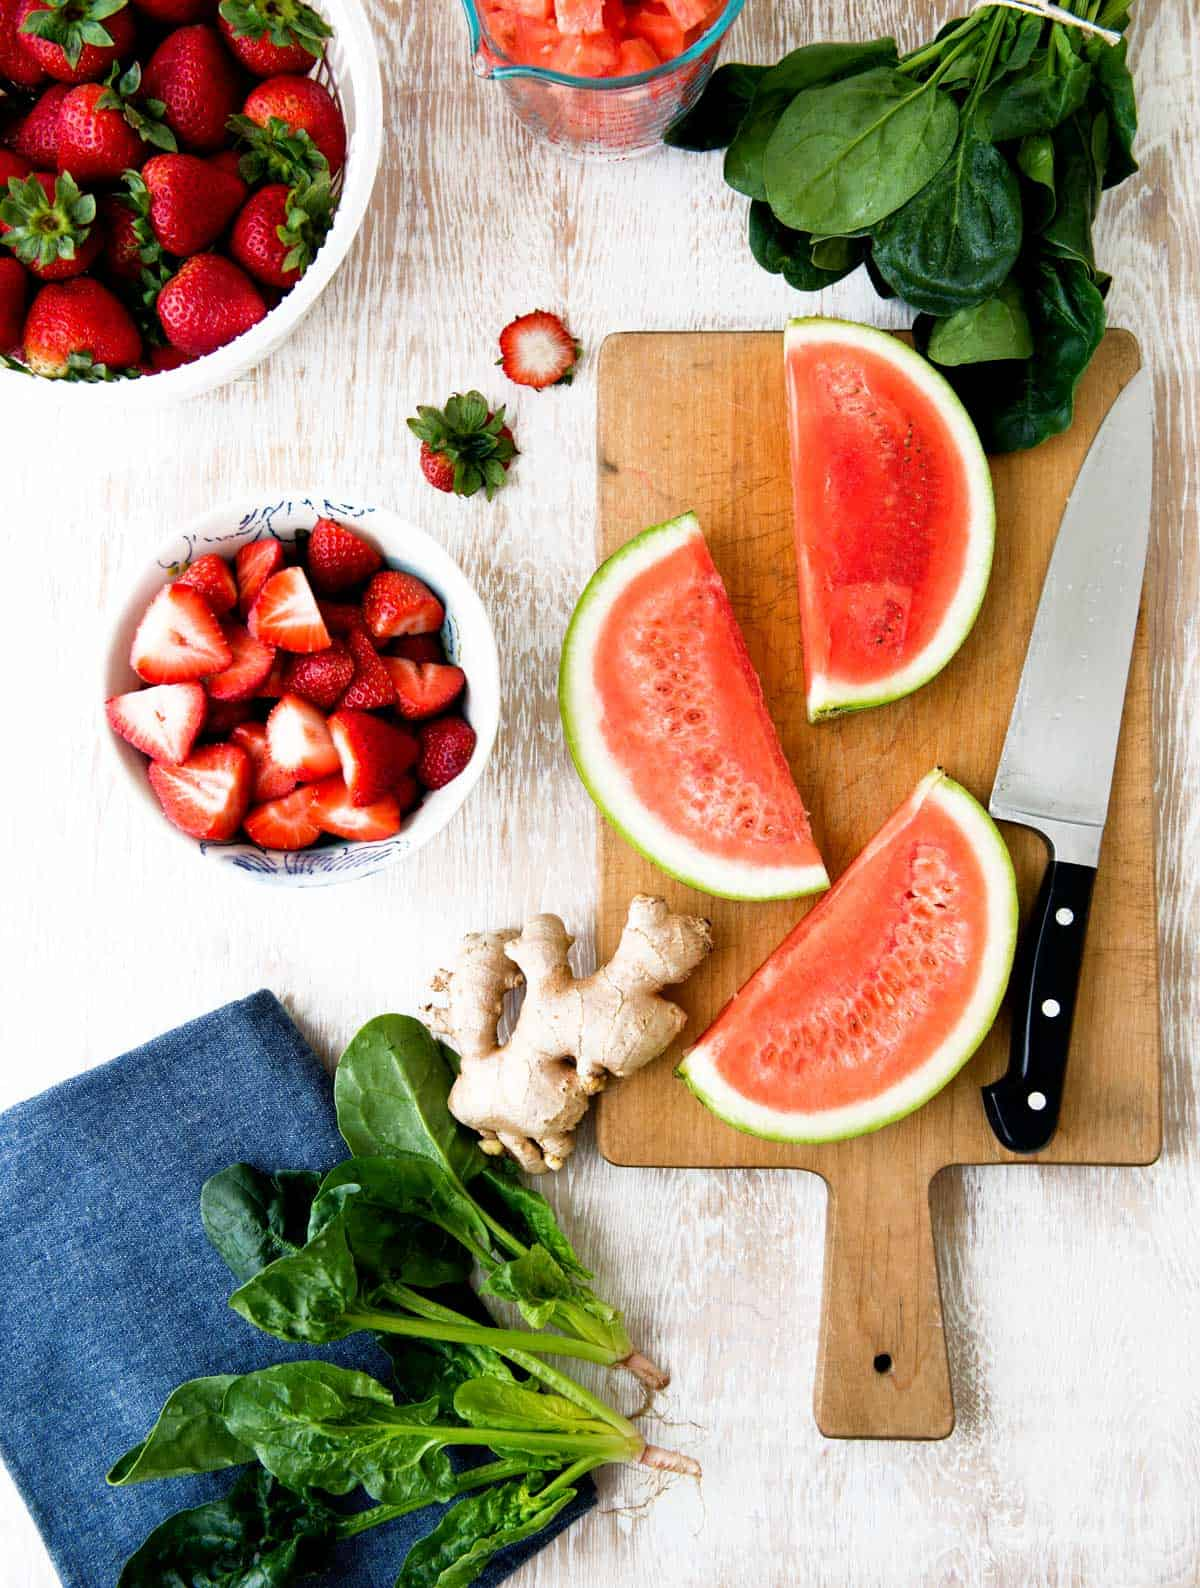 Ingredients for watermelon and strawberry green smoothie